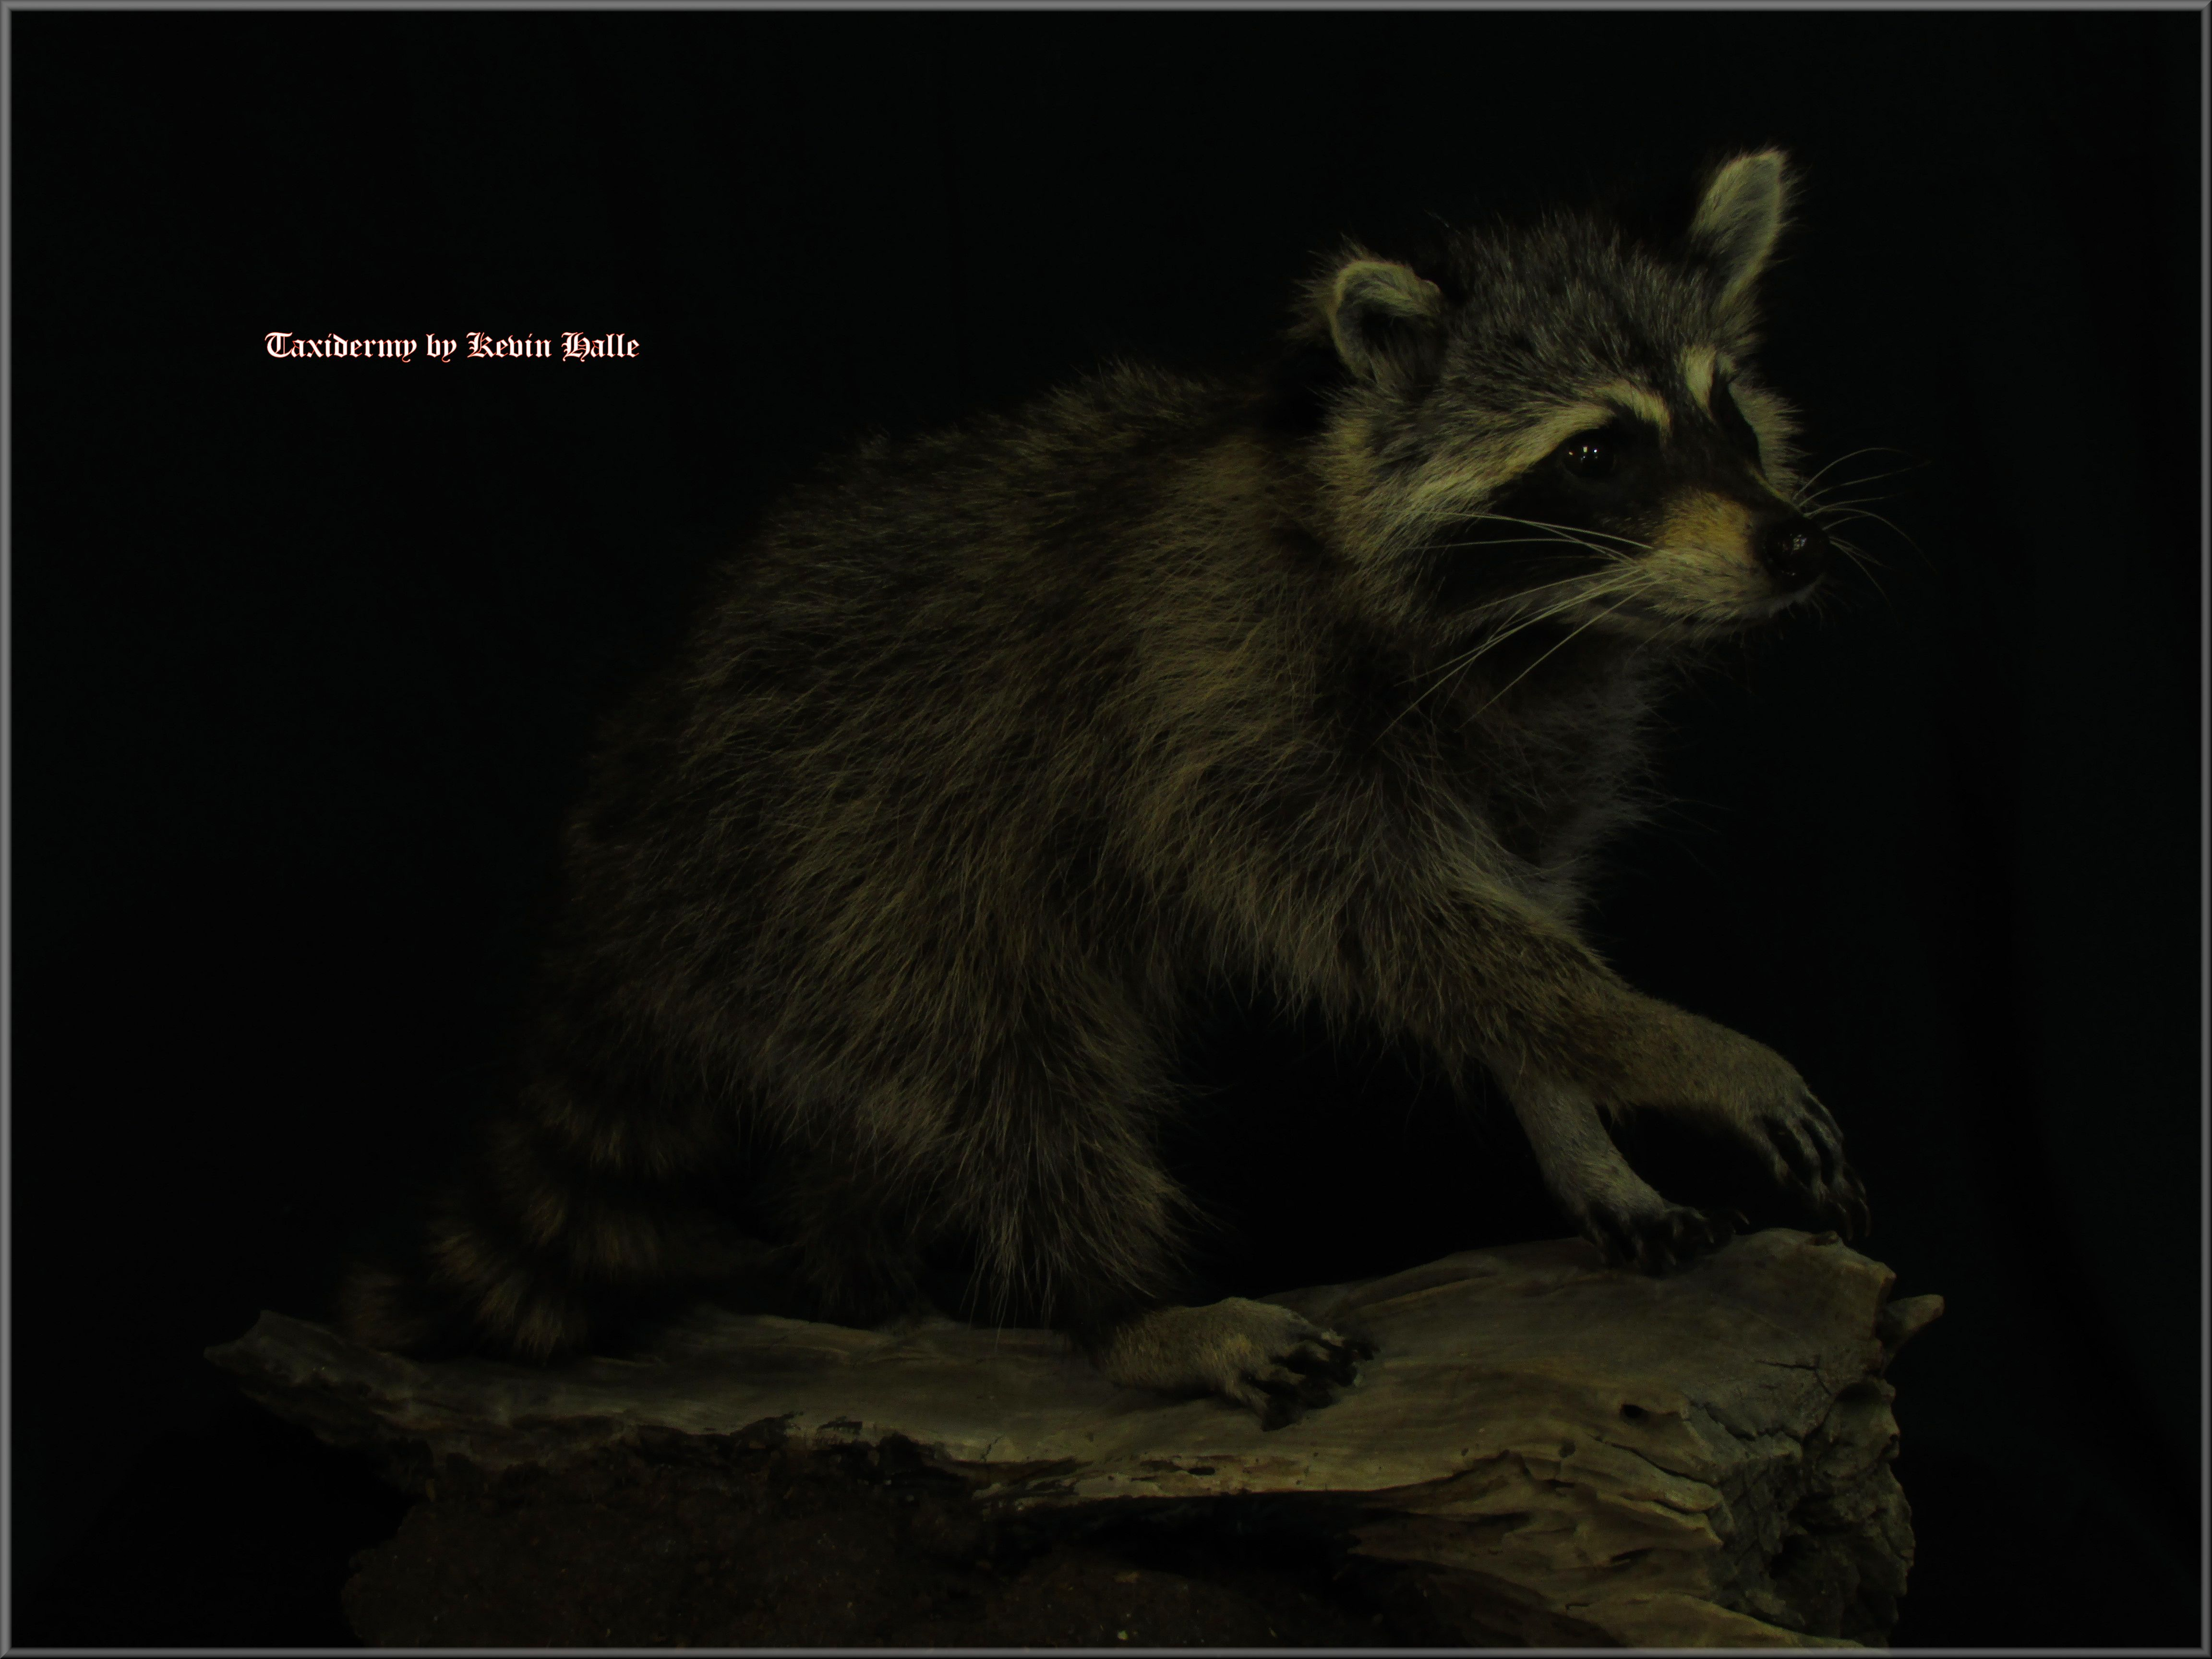 Raccoon lifesize